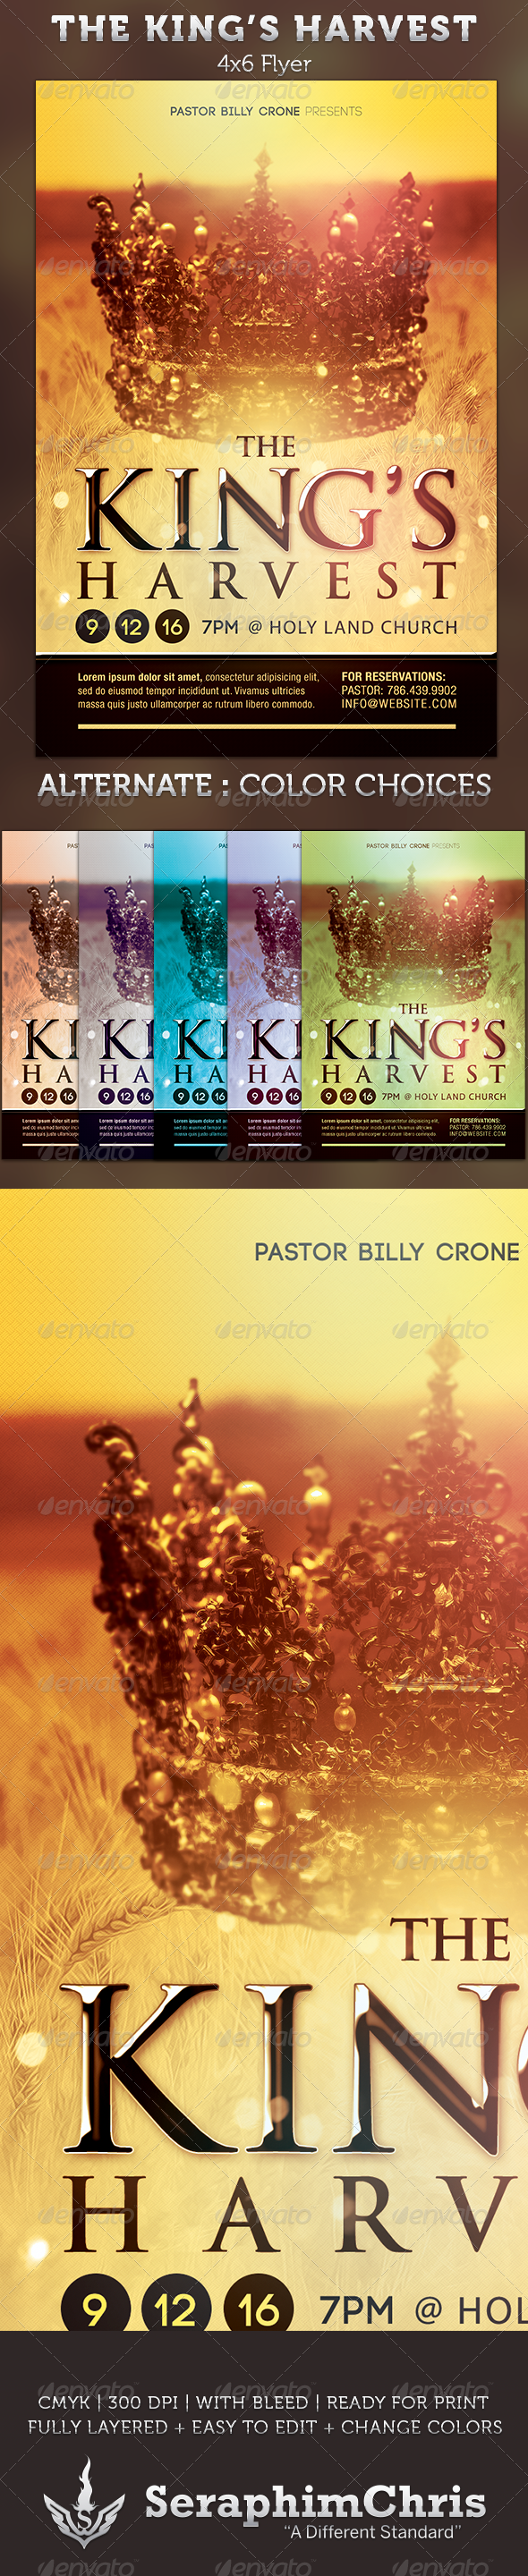 GraphicRiver The King's Harvest Church Flyer Template 2906941